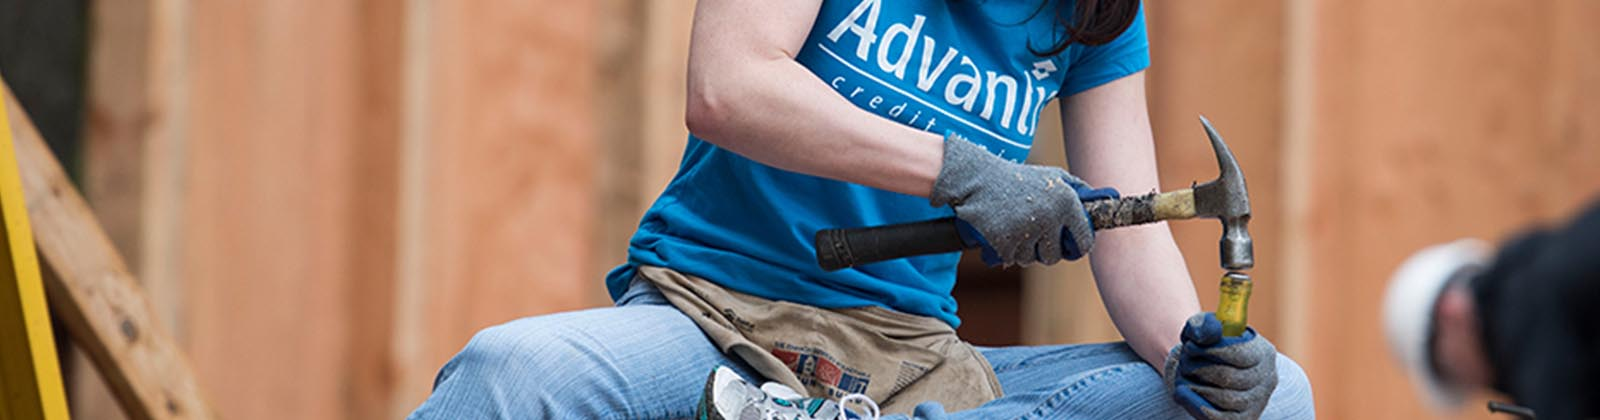 Advantis volunteer using a hammer while volunteering at Habitat for Humanity